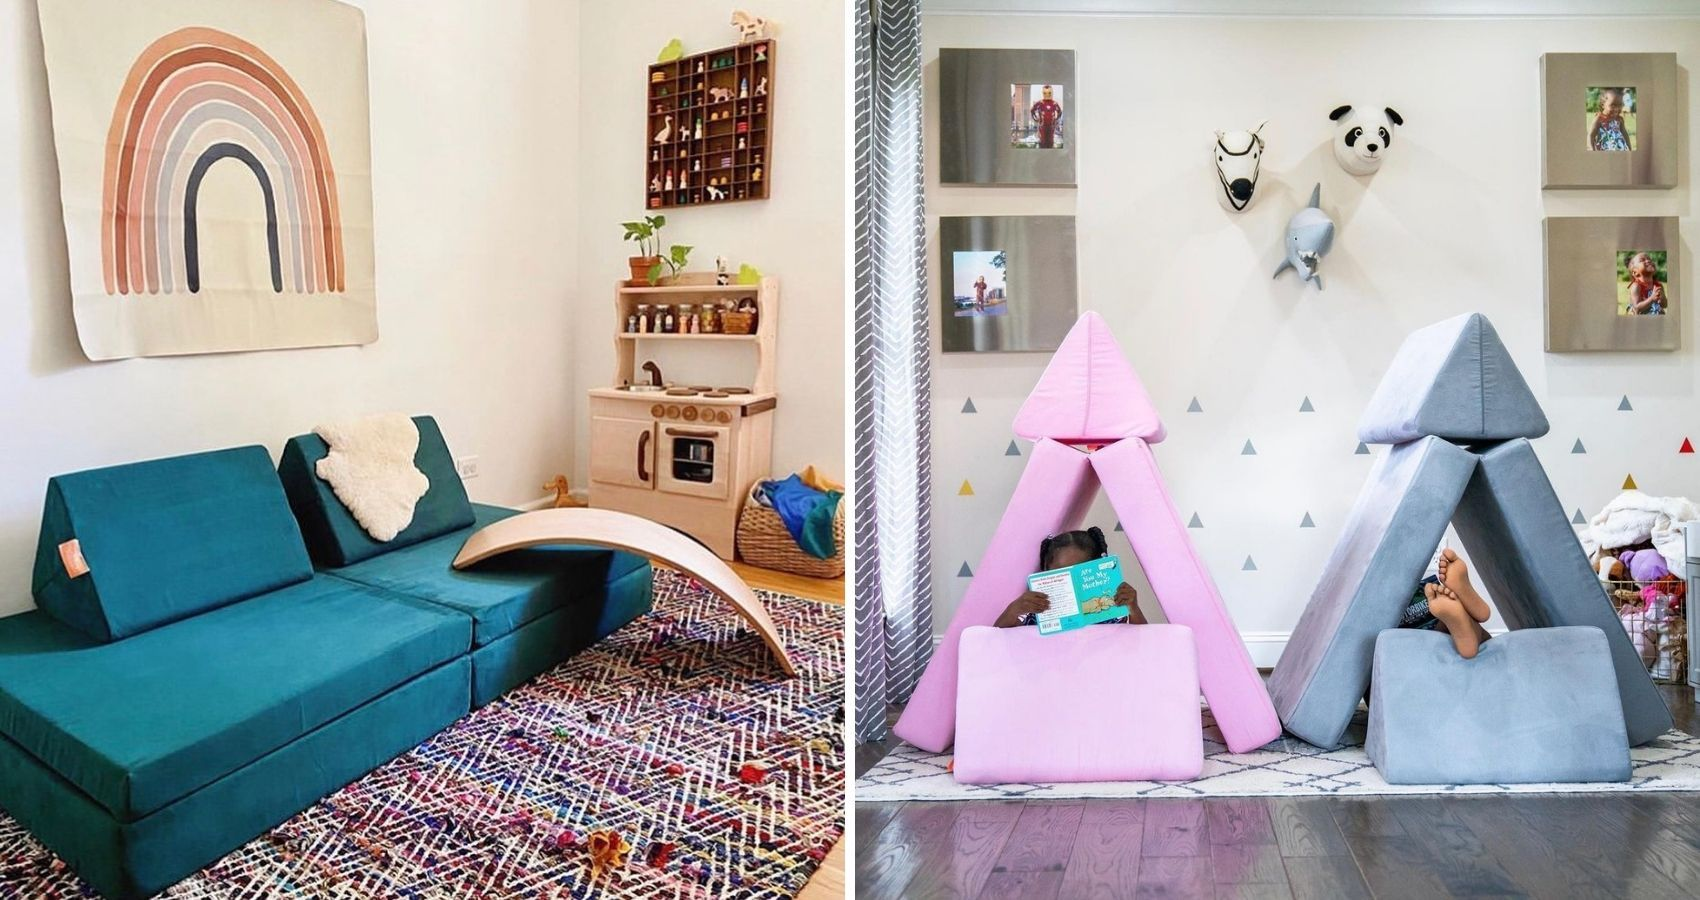 The Nugget Couch For Kids, Where To Buy & Price